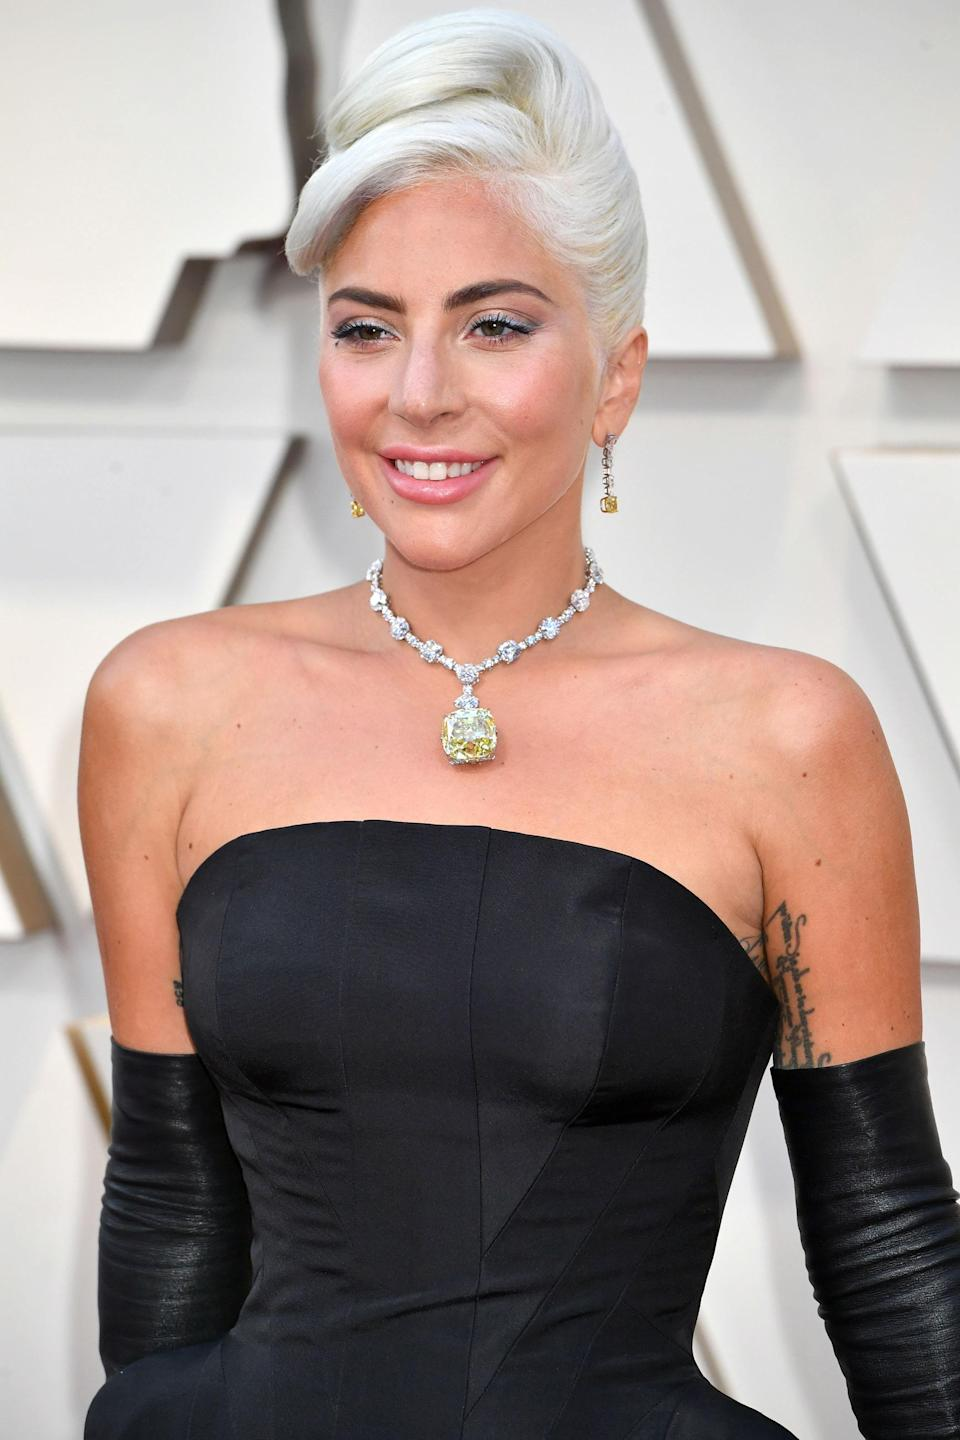 The Oscars ended the decade on a high note with Lady Gaga's revival of the Tiffany diamond. Only worn by three people—Gaga, Audrey Hepburn, and socialite Mrs. Mary Whitehouse—the 128-carat piece is valued at more than $30 million. Dollar signs aside, the fantastic yellow diamond was the cherry on top of a stellar night that saw the star take home her first Academy Award.